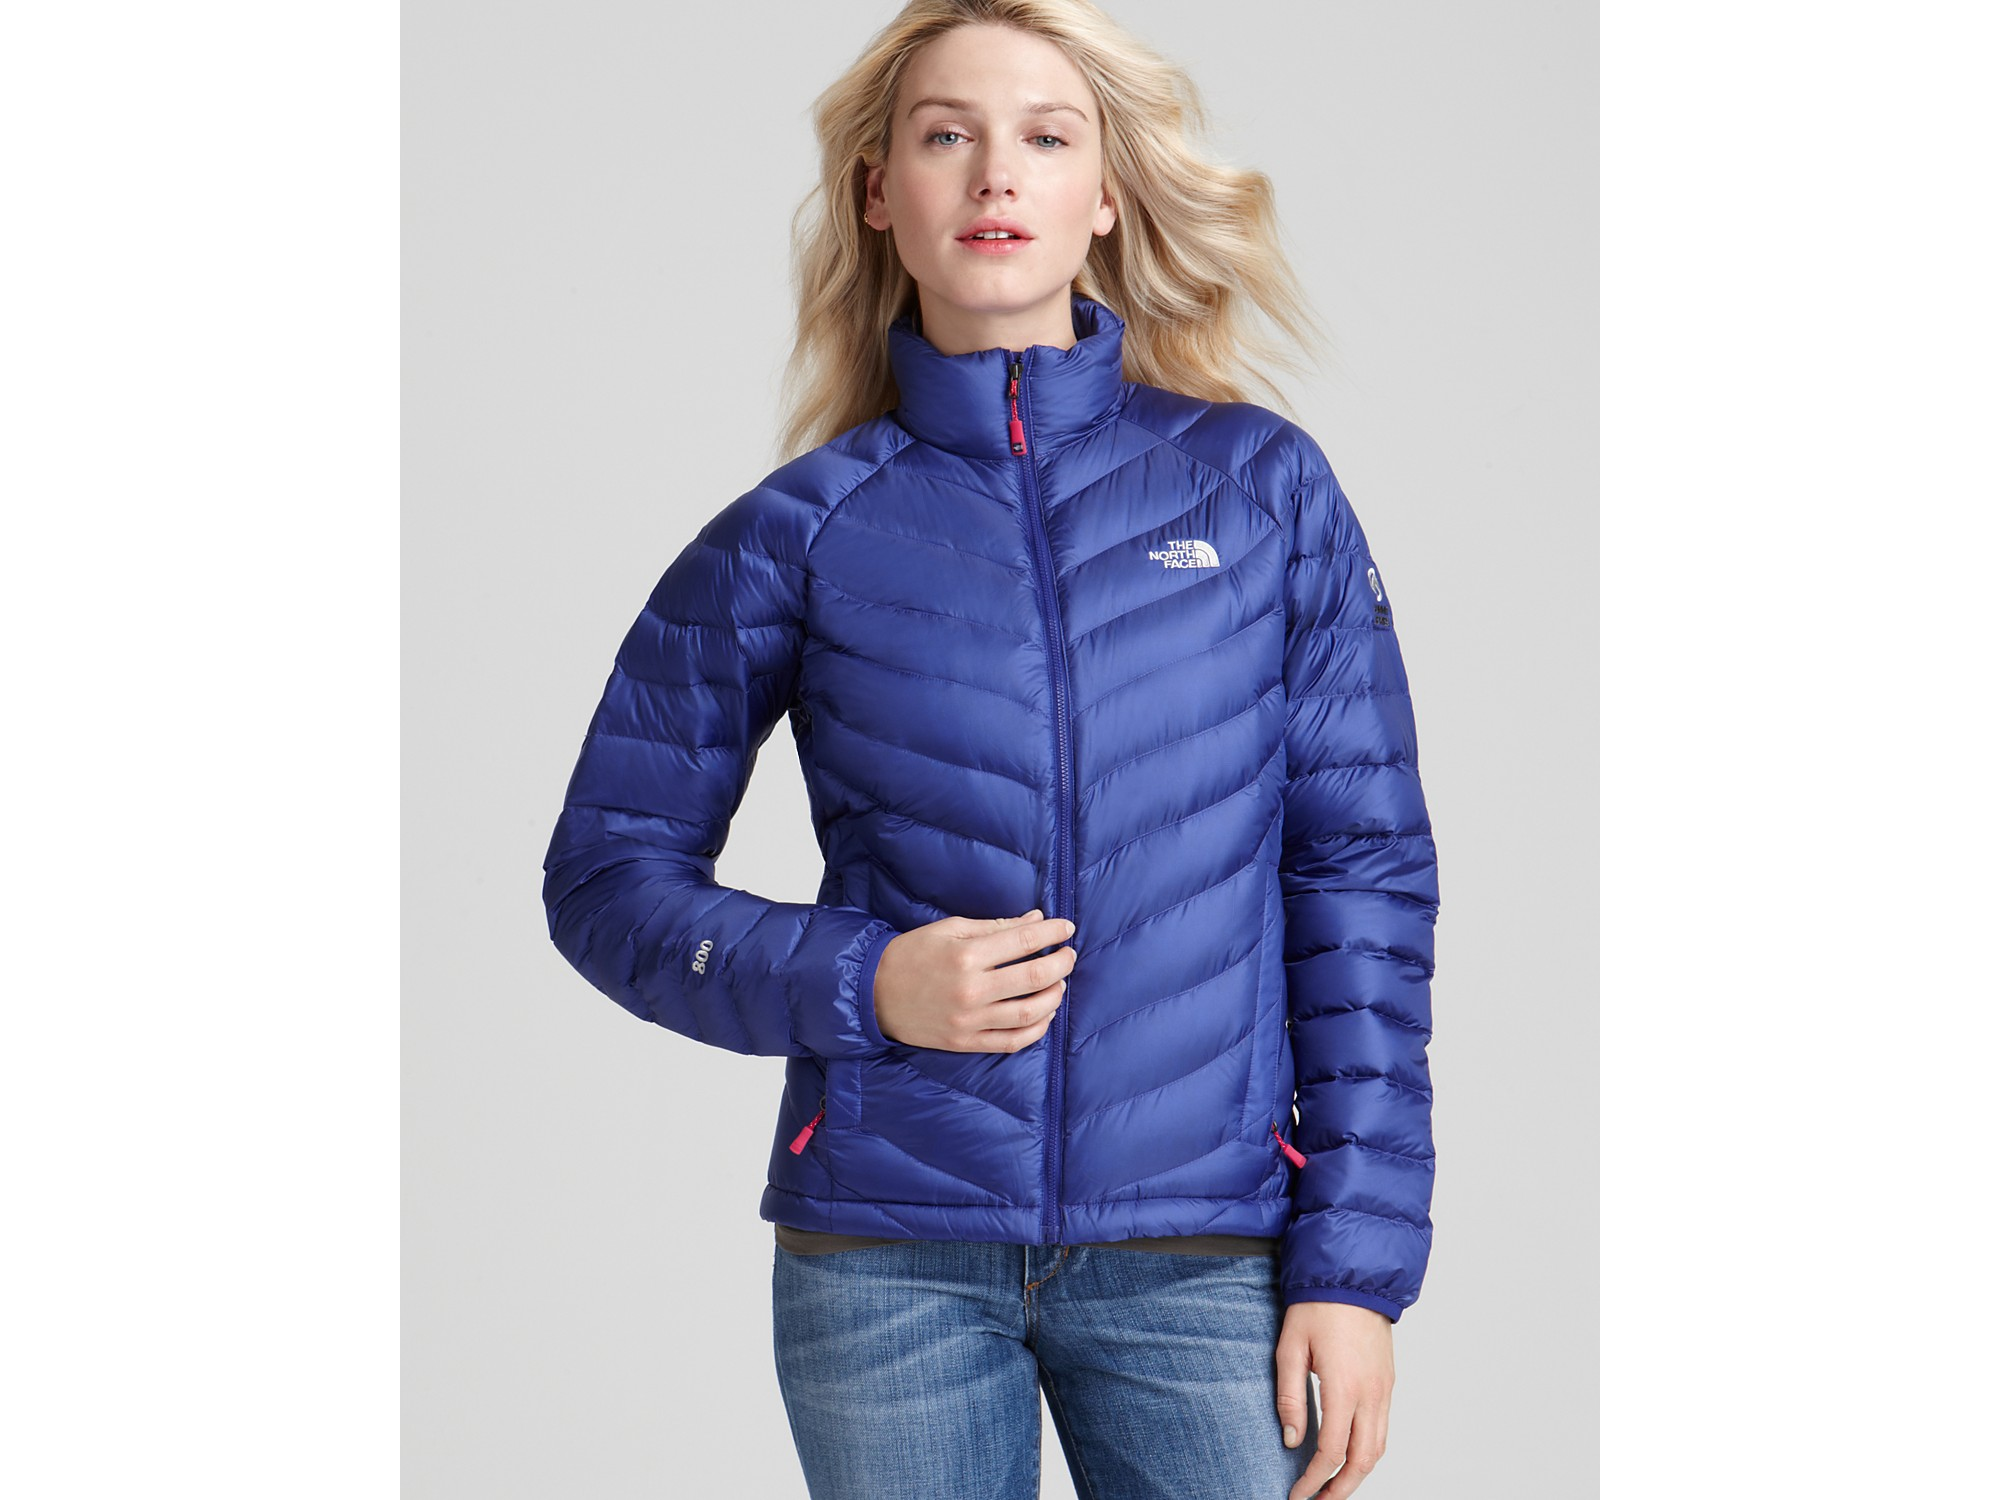 04b4c7e4c The North Face Blue Thunder Lightweight Down Jacket